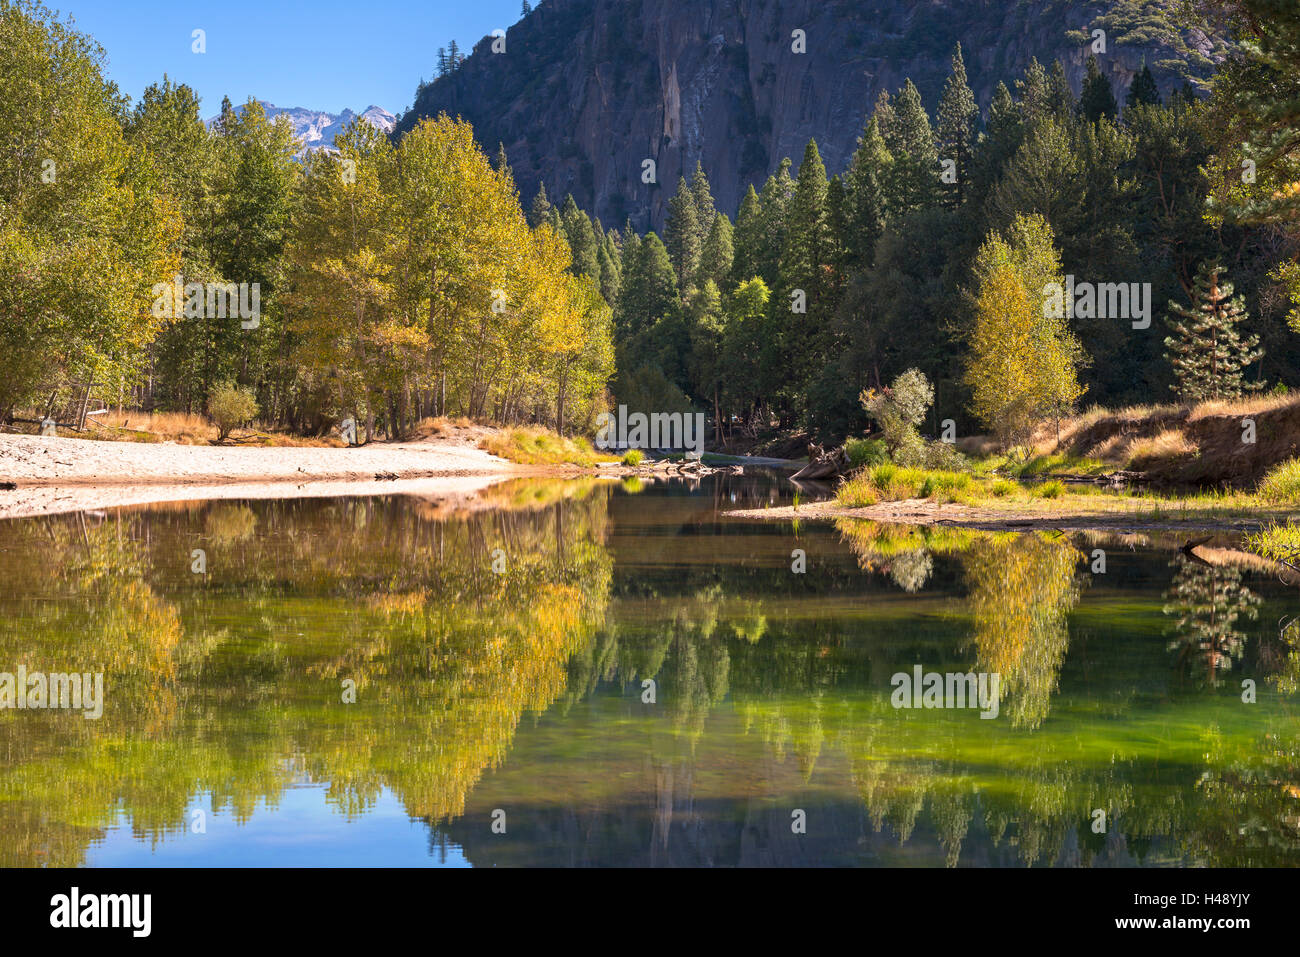 Colourful autumn trees flank the River Merced in Yosemite Valley, California, USA. Autumn (October) 2014. - Stock Image